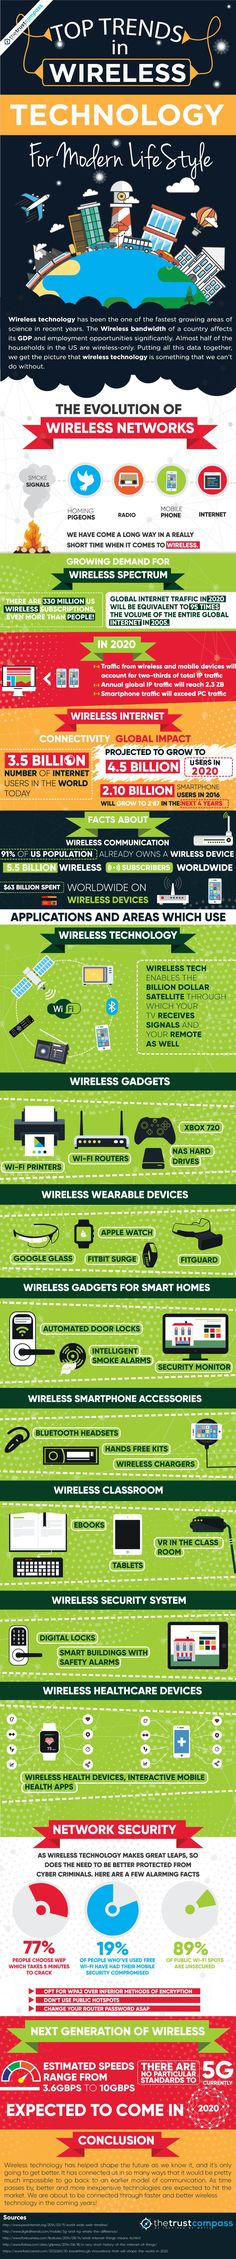 Top Trends In Wireless Technology For Modern LifeStyle #Infographic #Technology #Trends